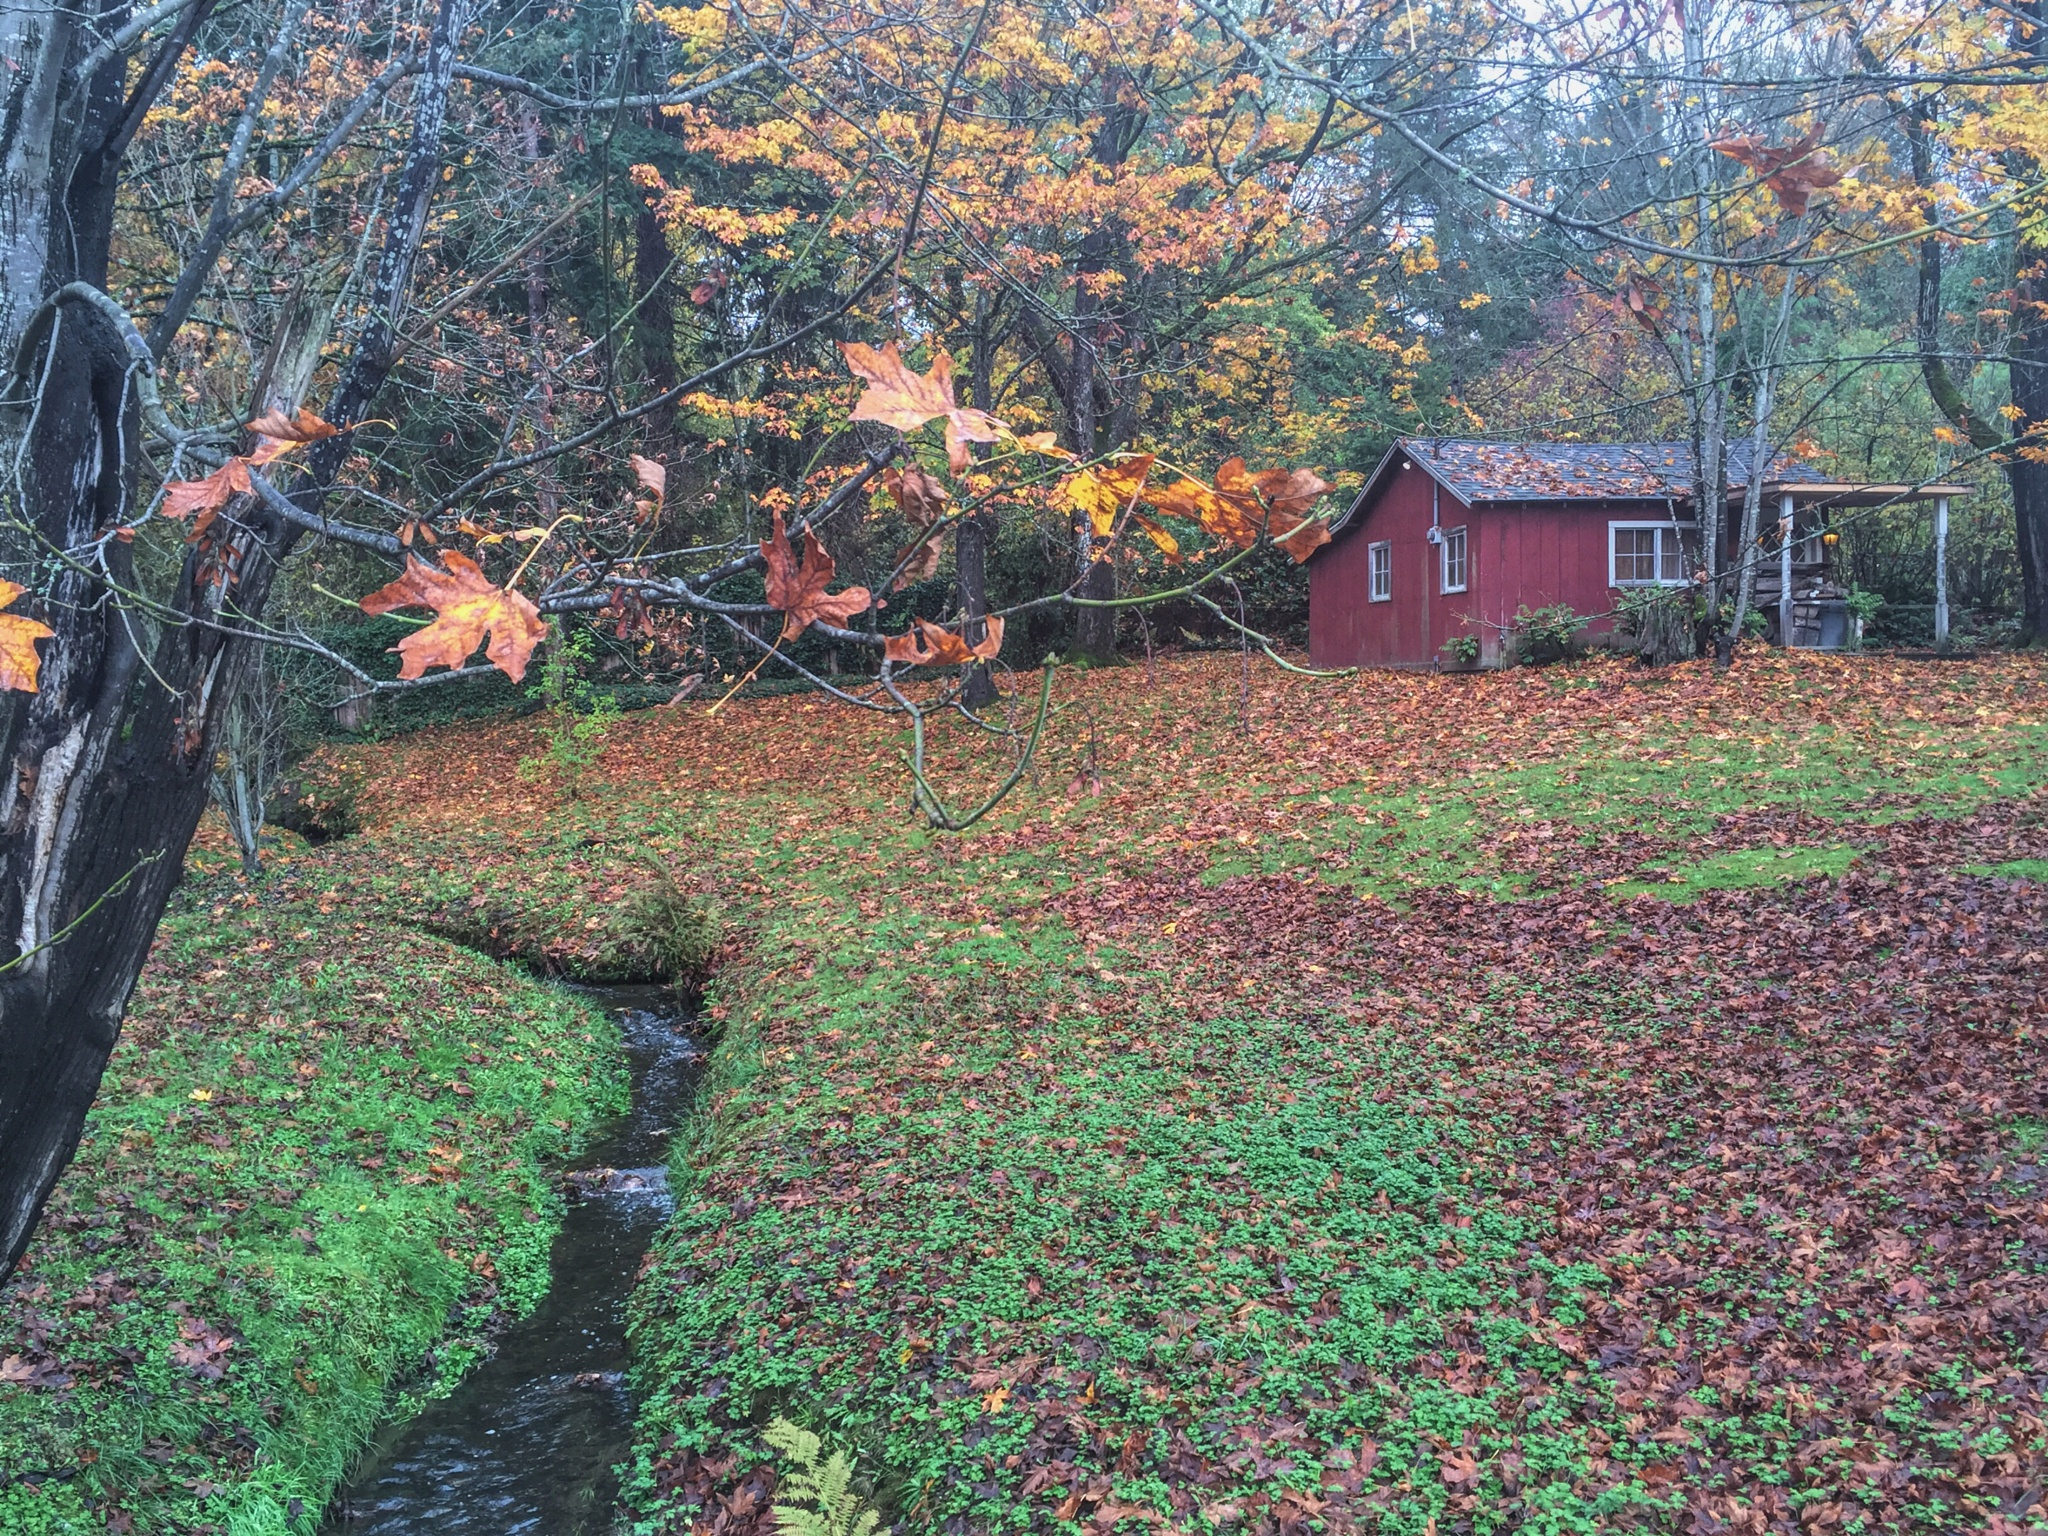 Creek and Red House by suna